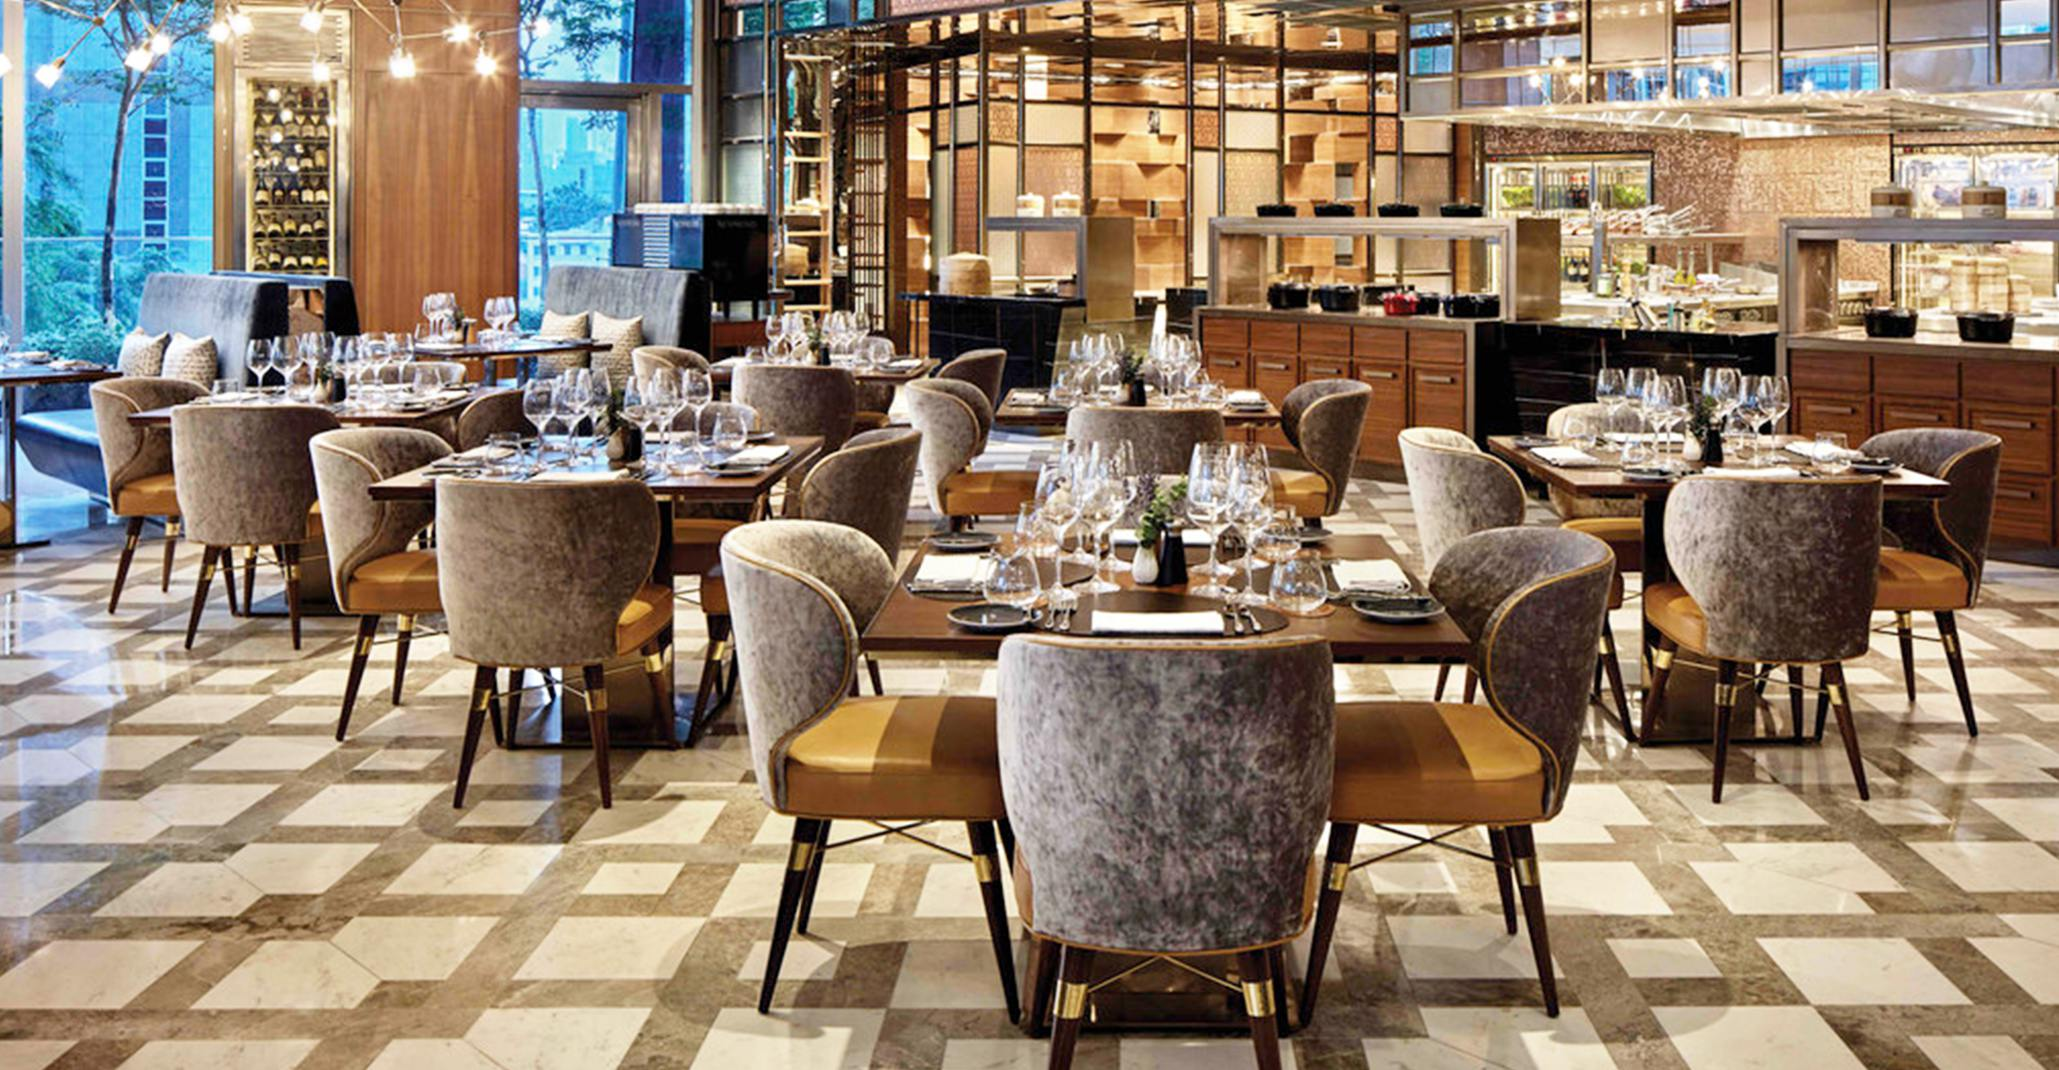 Racines Restaurant with Louis Dining chair by Ottiu